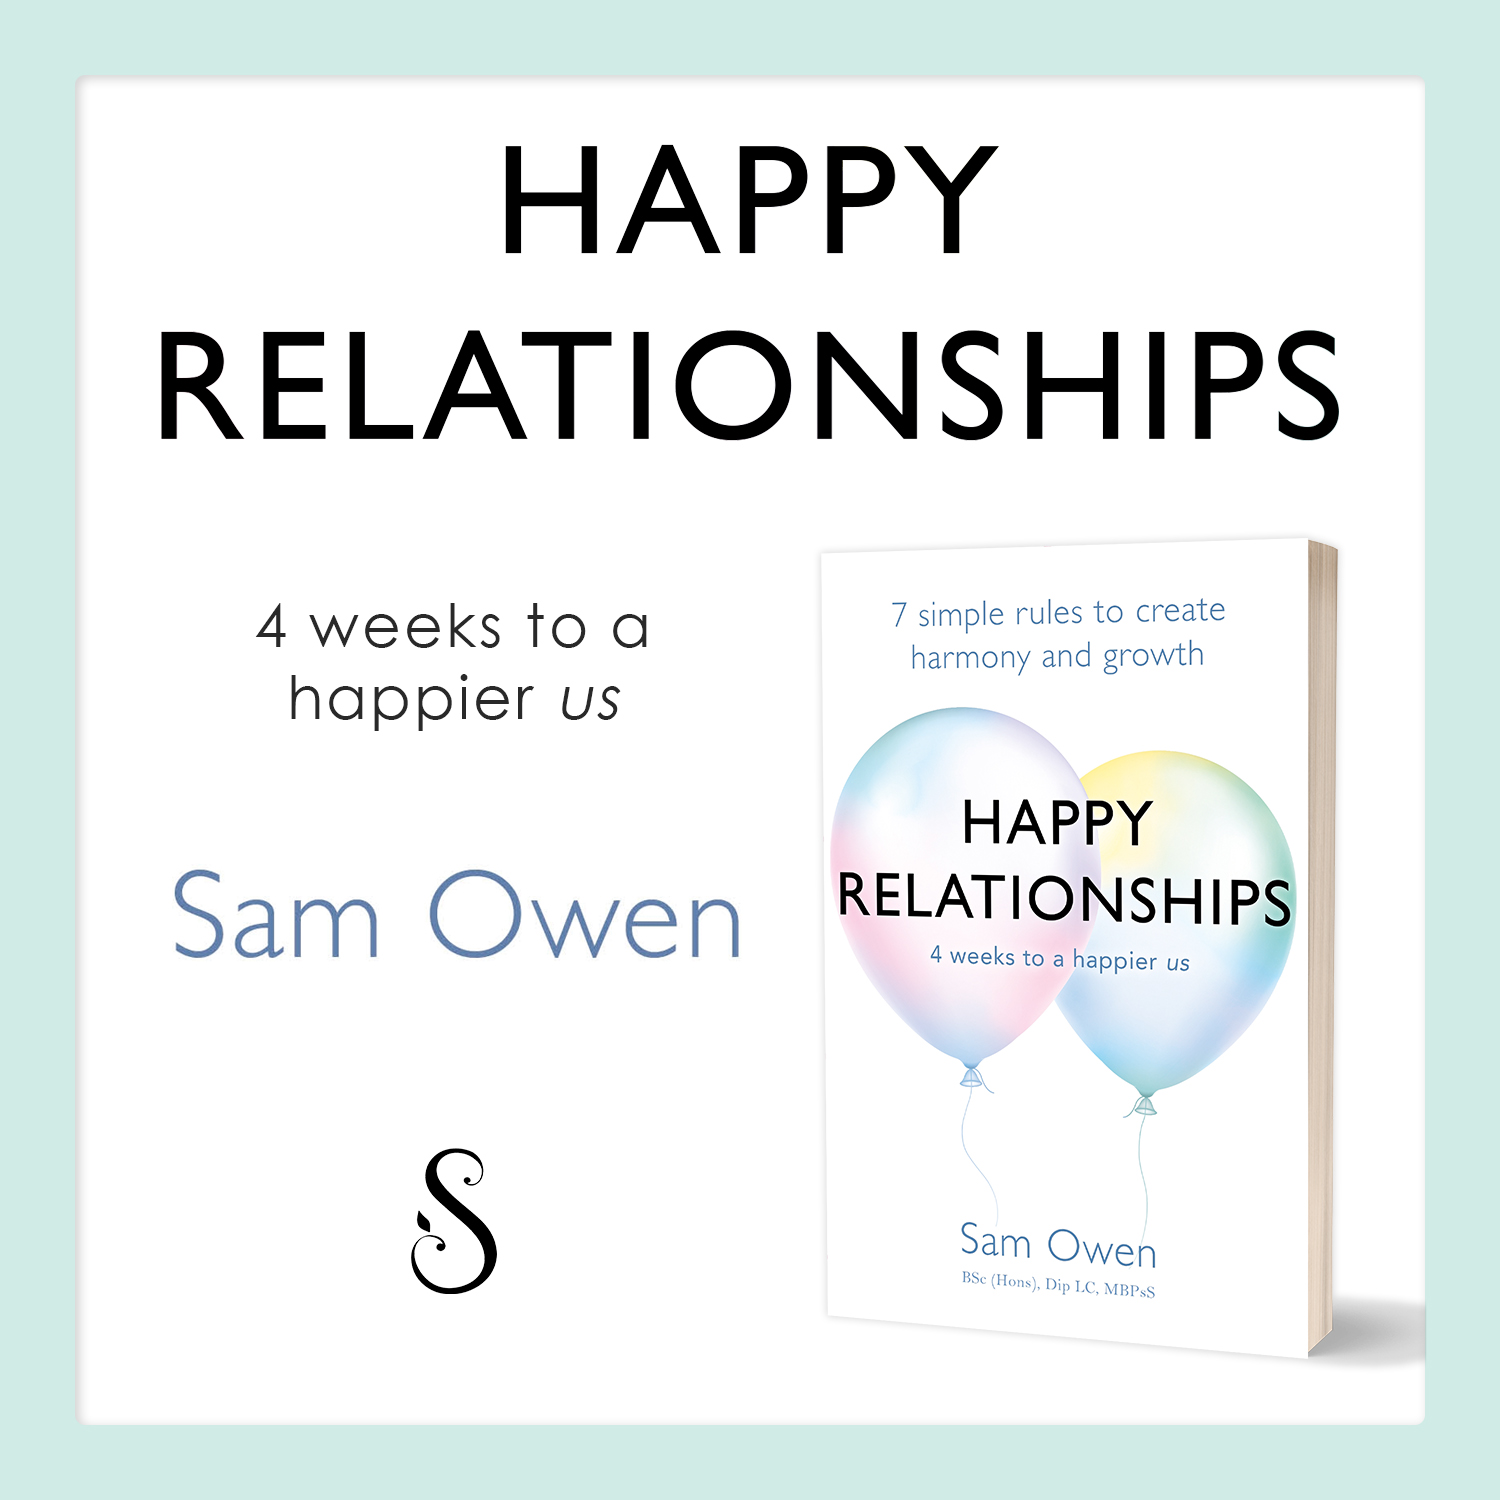 Happy Relationships by Relationship Coach Sam Owen - self-help book